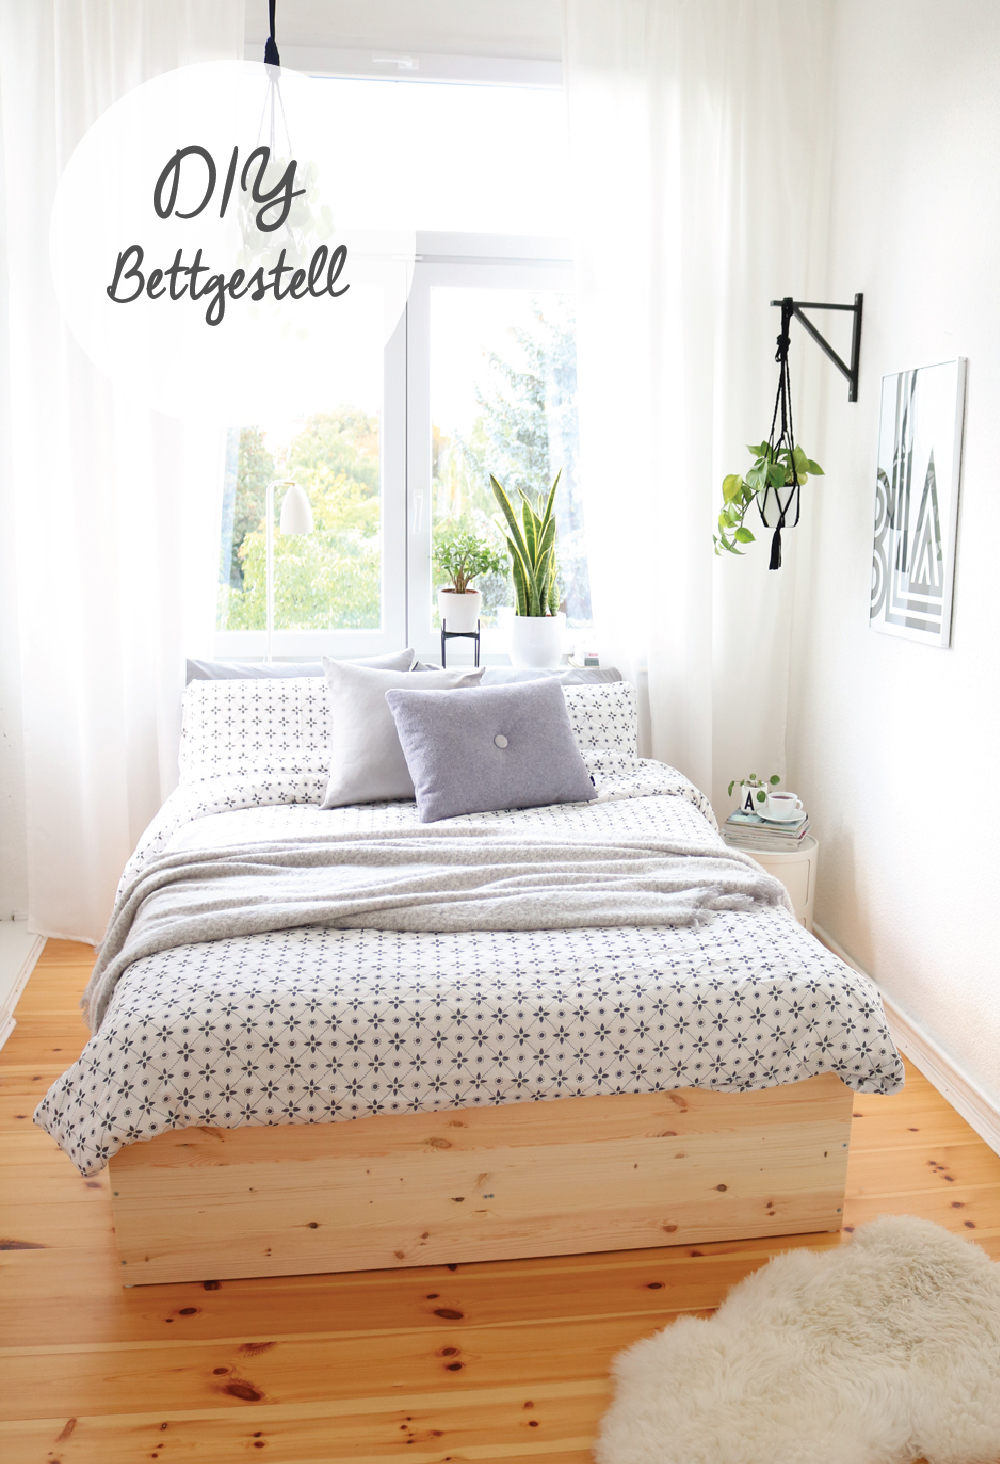 diy bettgestell aus holzplatten pretty nice. Black Bedroom Furniture Sets. Home Design Ideas